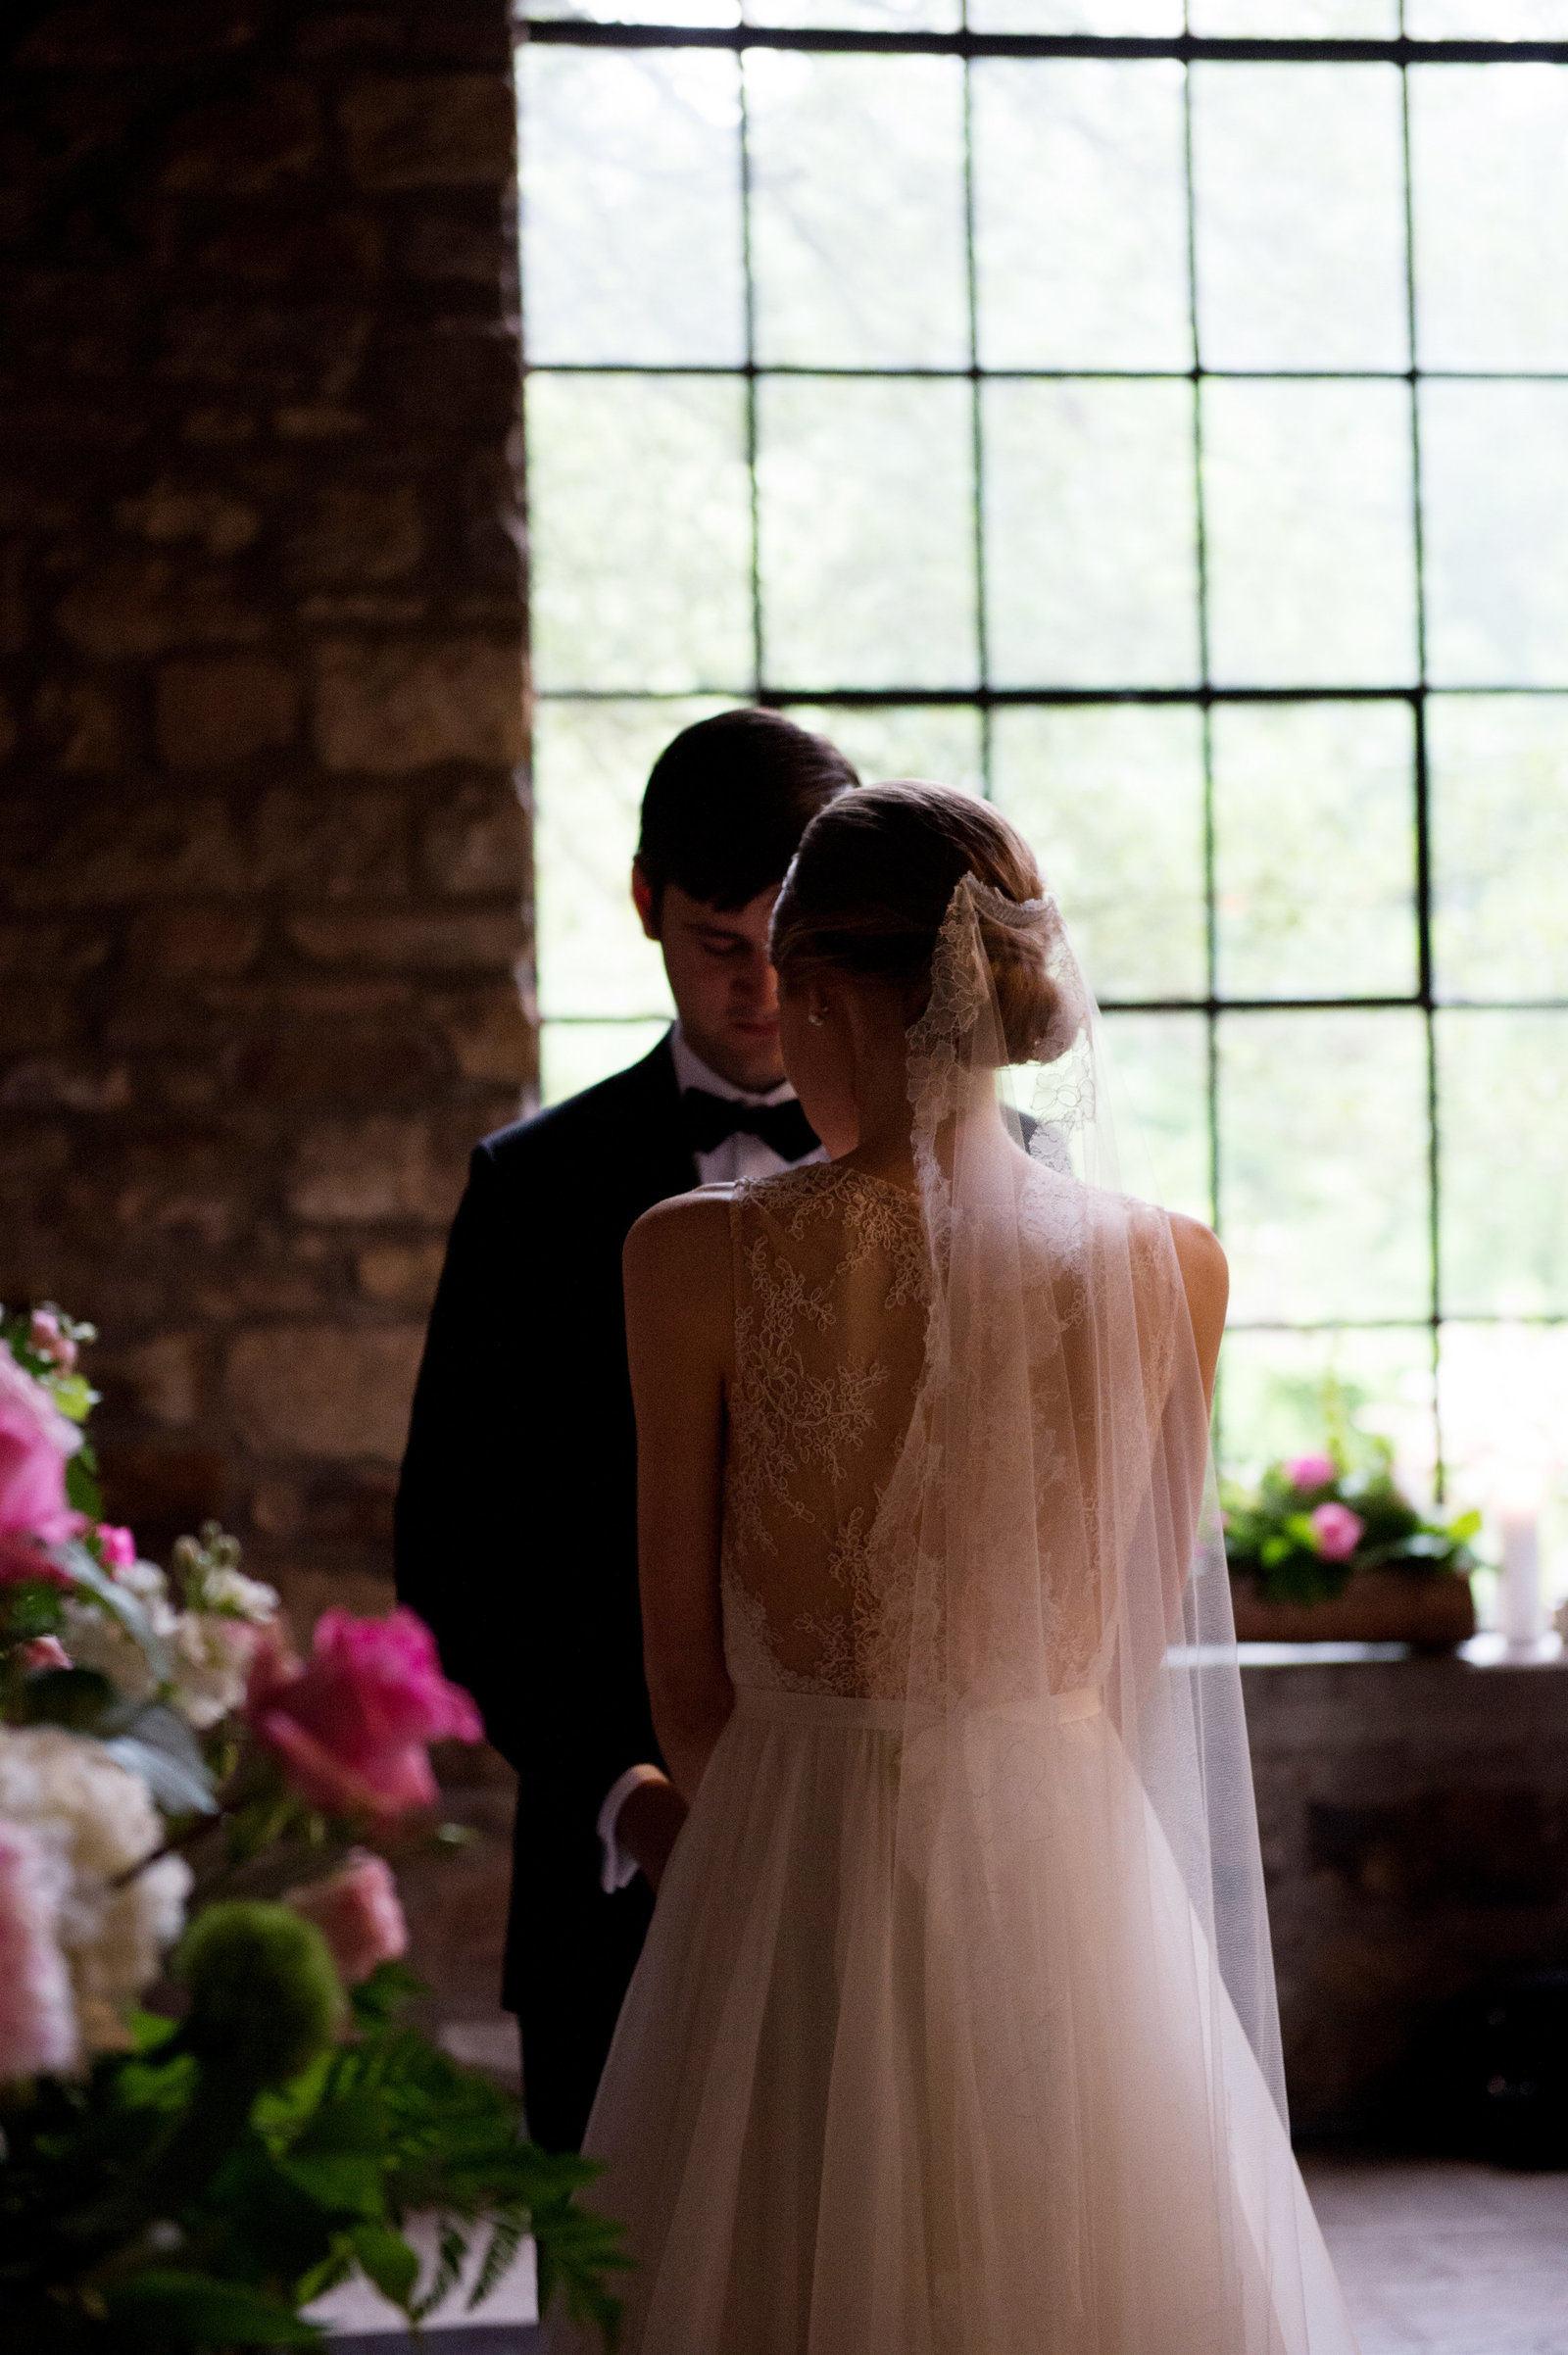 Crystal Genes Photography HOLLY HEDGE WEDDING_150620-141308